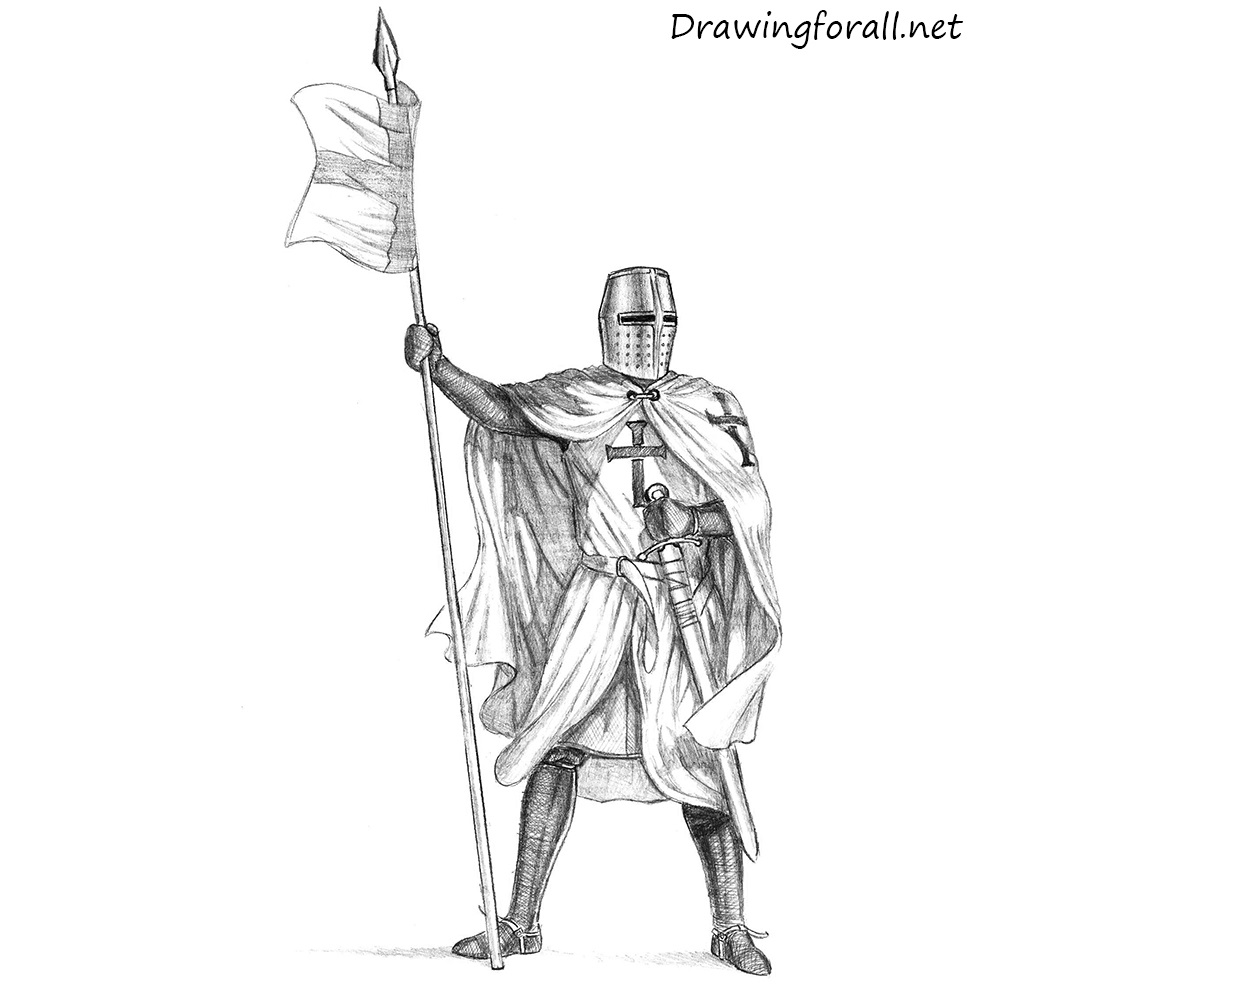 How To Draw A Knight Drawingforall Net